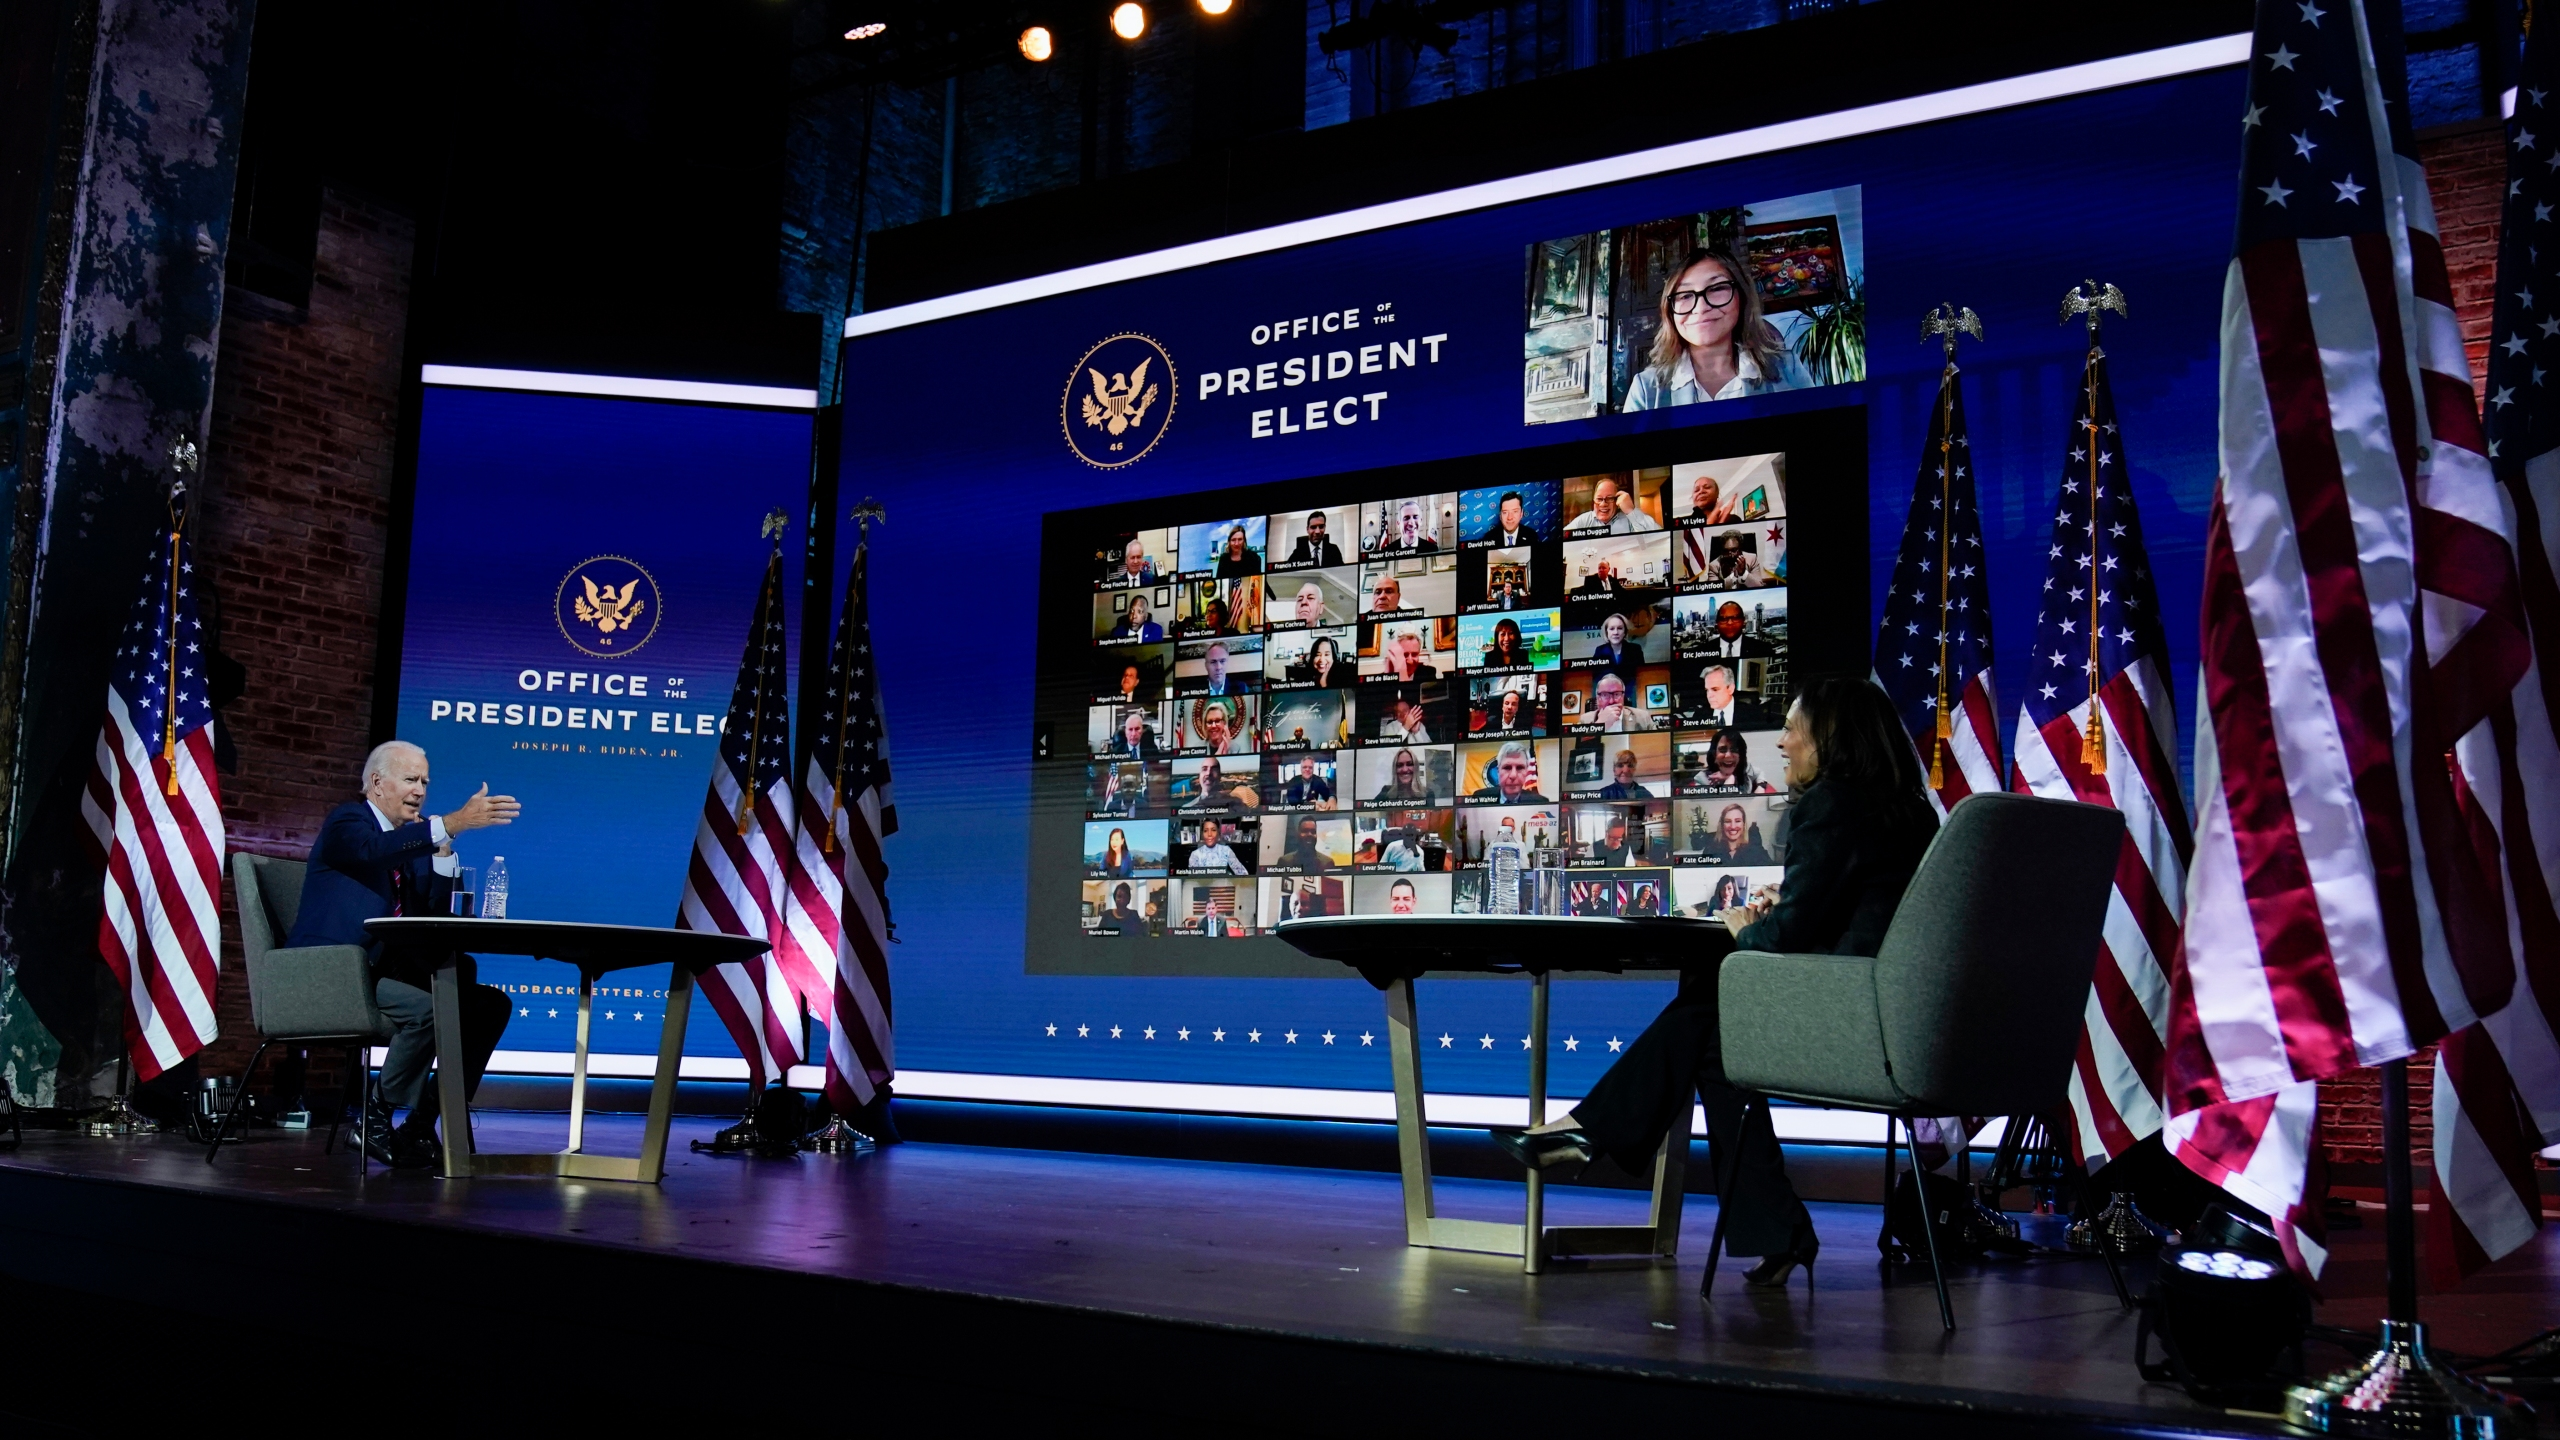 President-elect Joe Biden and Vice President-elect Kamala Harris attend a meeting at The Queen theater Monday, Nov. 23, 2020, in Wilmington, Del. (AP Photo/Carolyn Kaster)